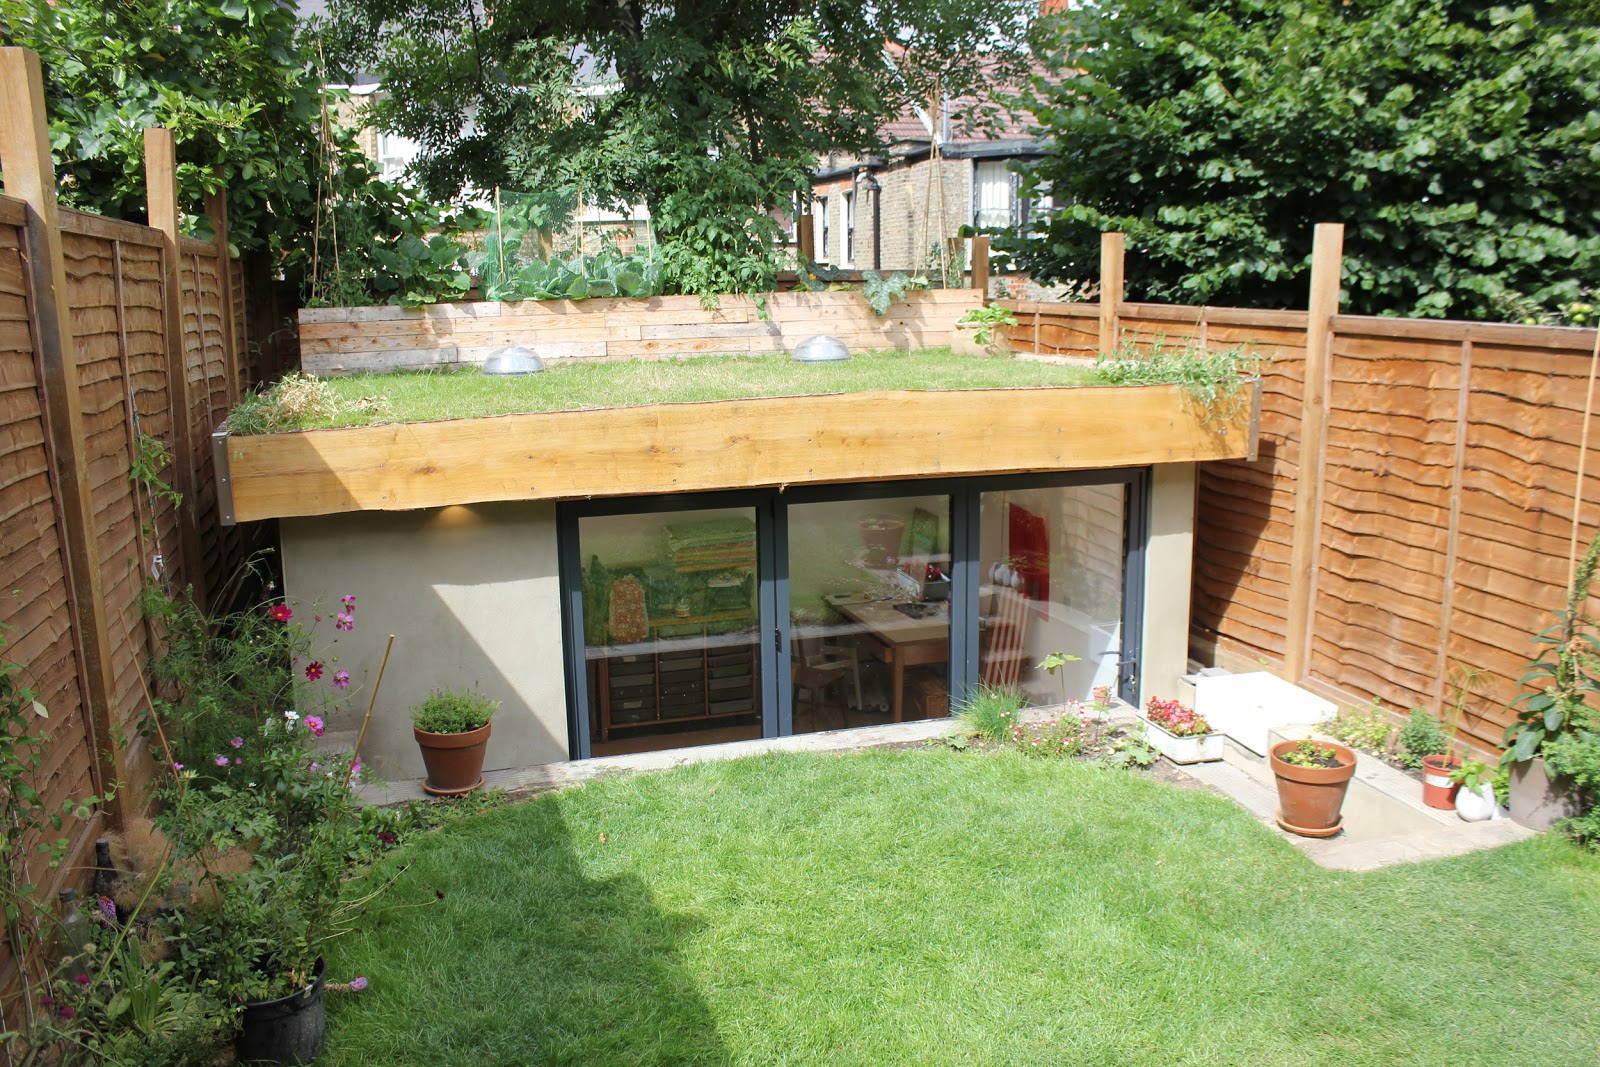 Shedworking: Underground garden office